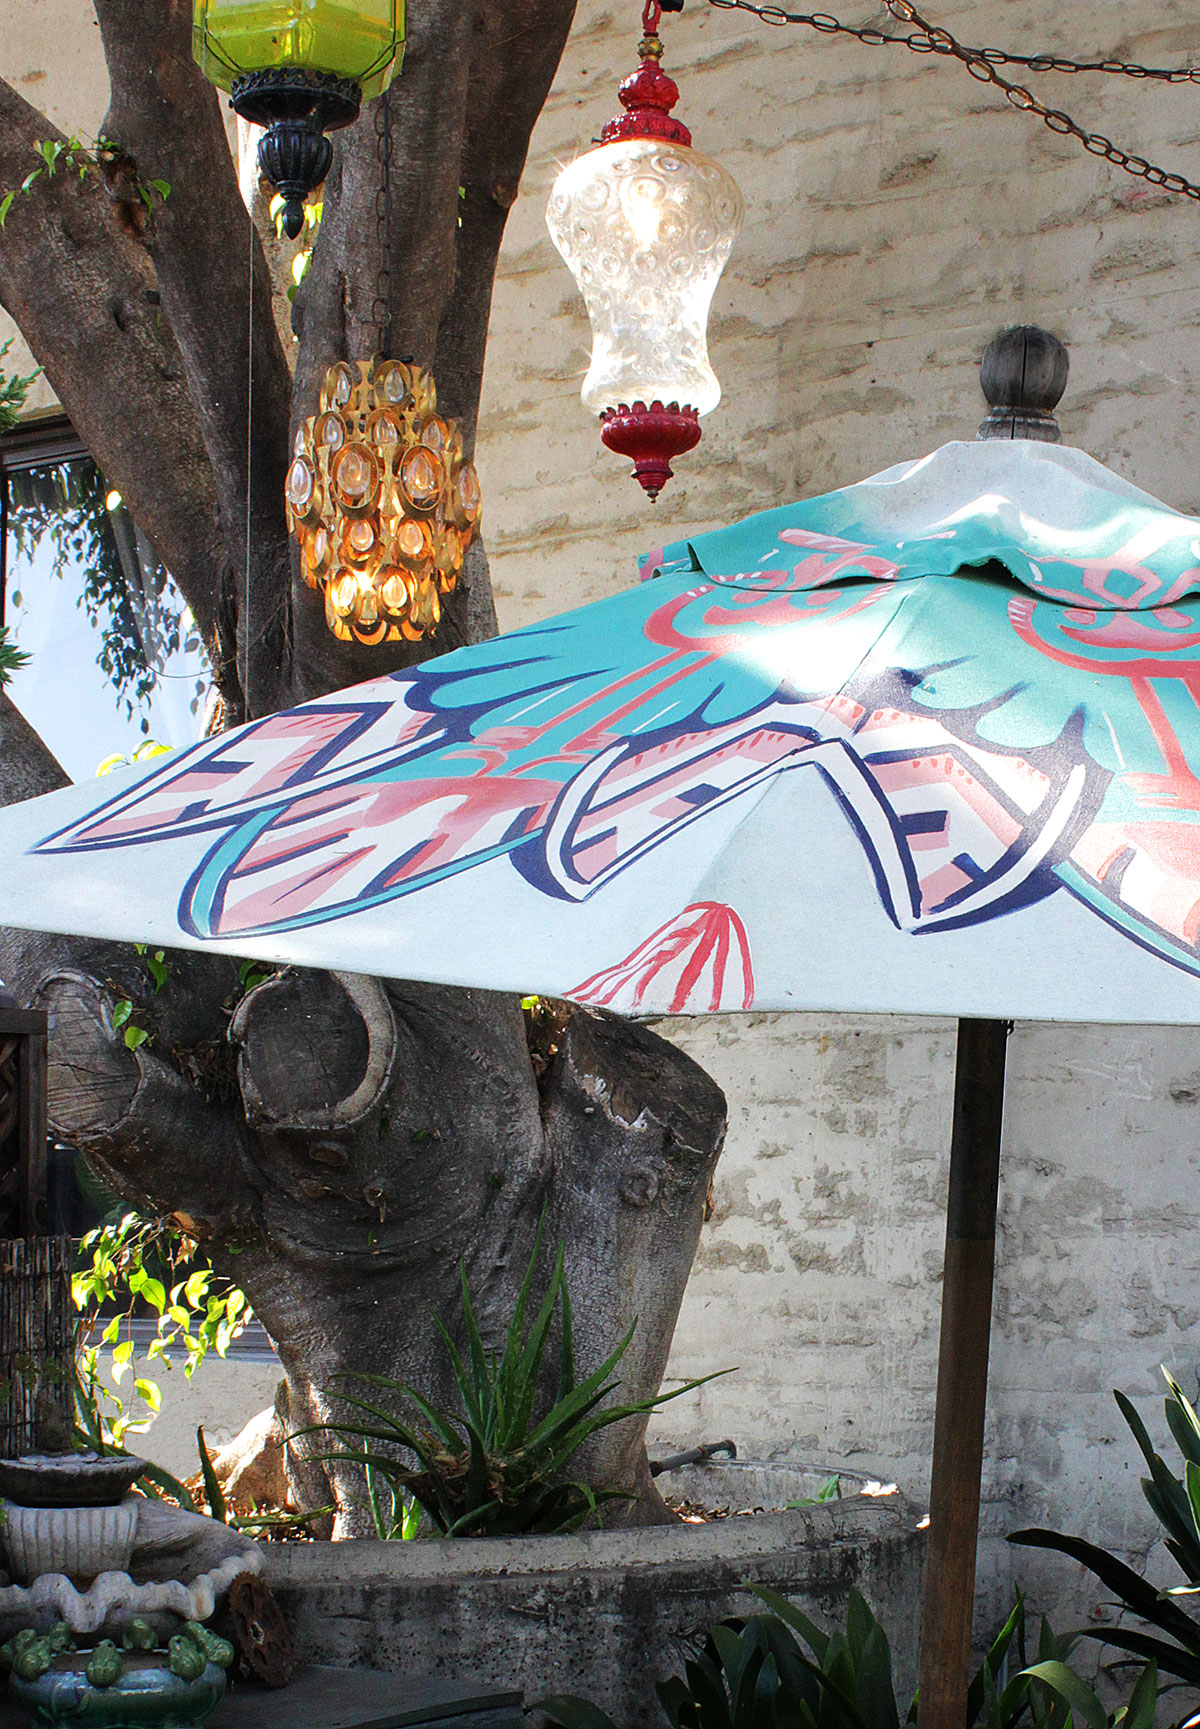 turquoise and coral hand painted patio umbrella in the garden with trees and hanging lanterns